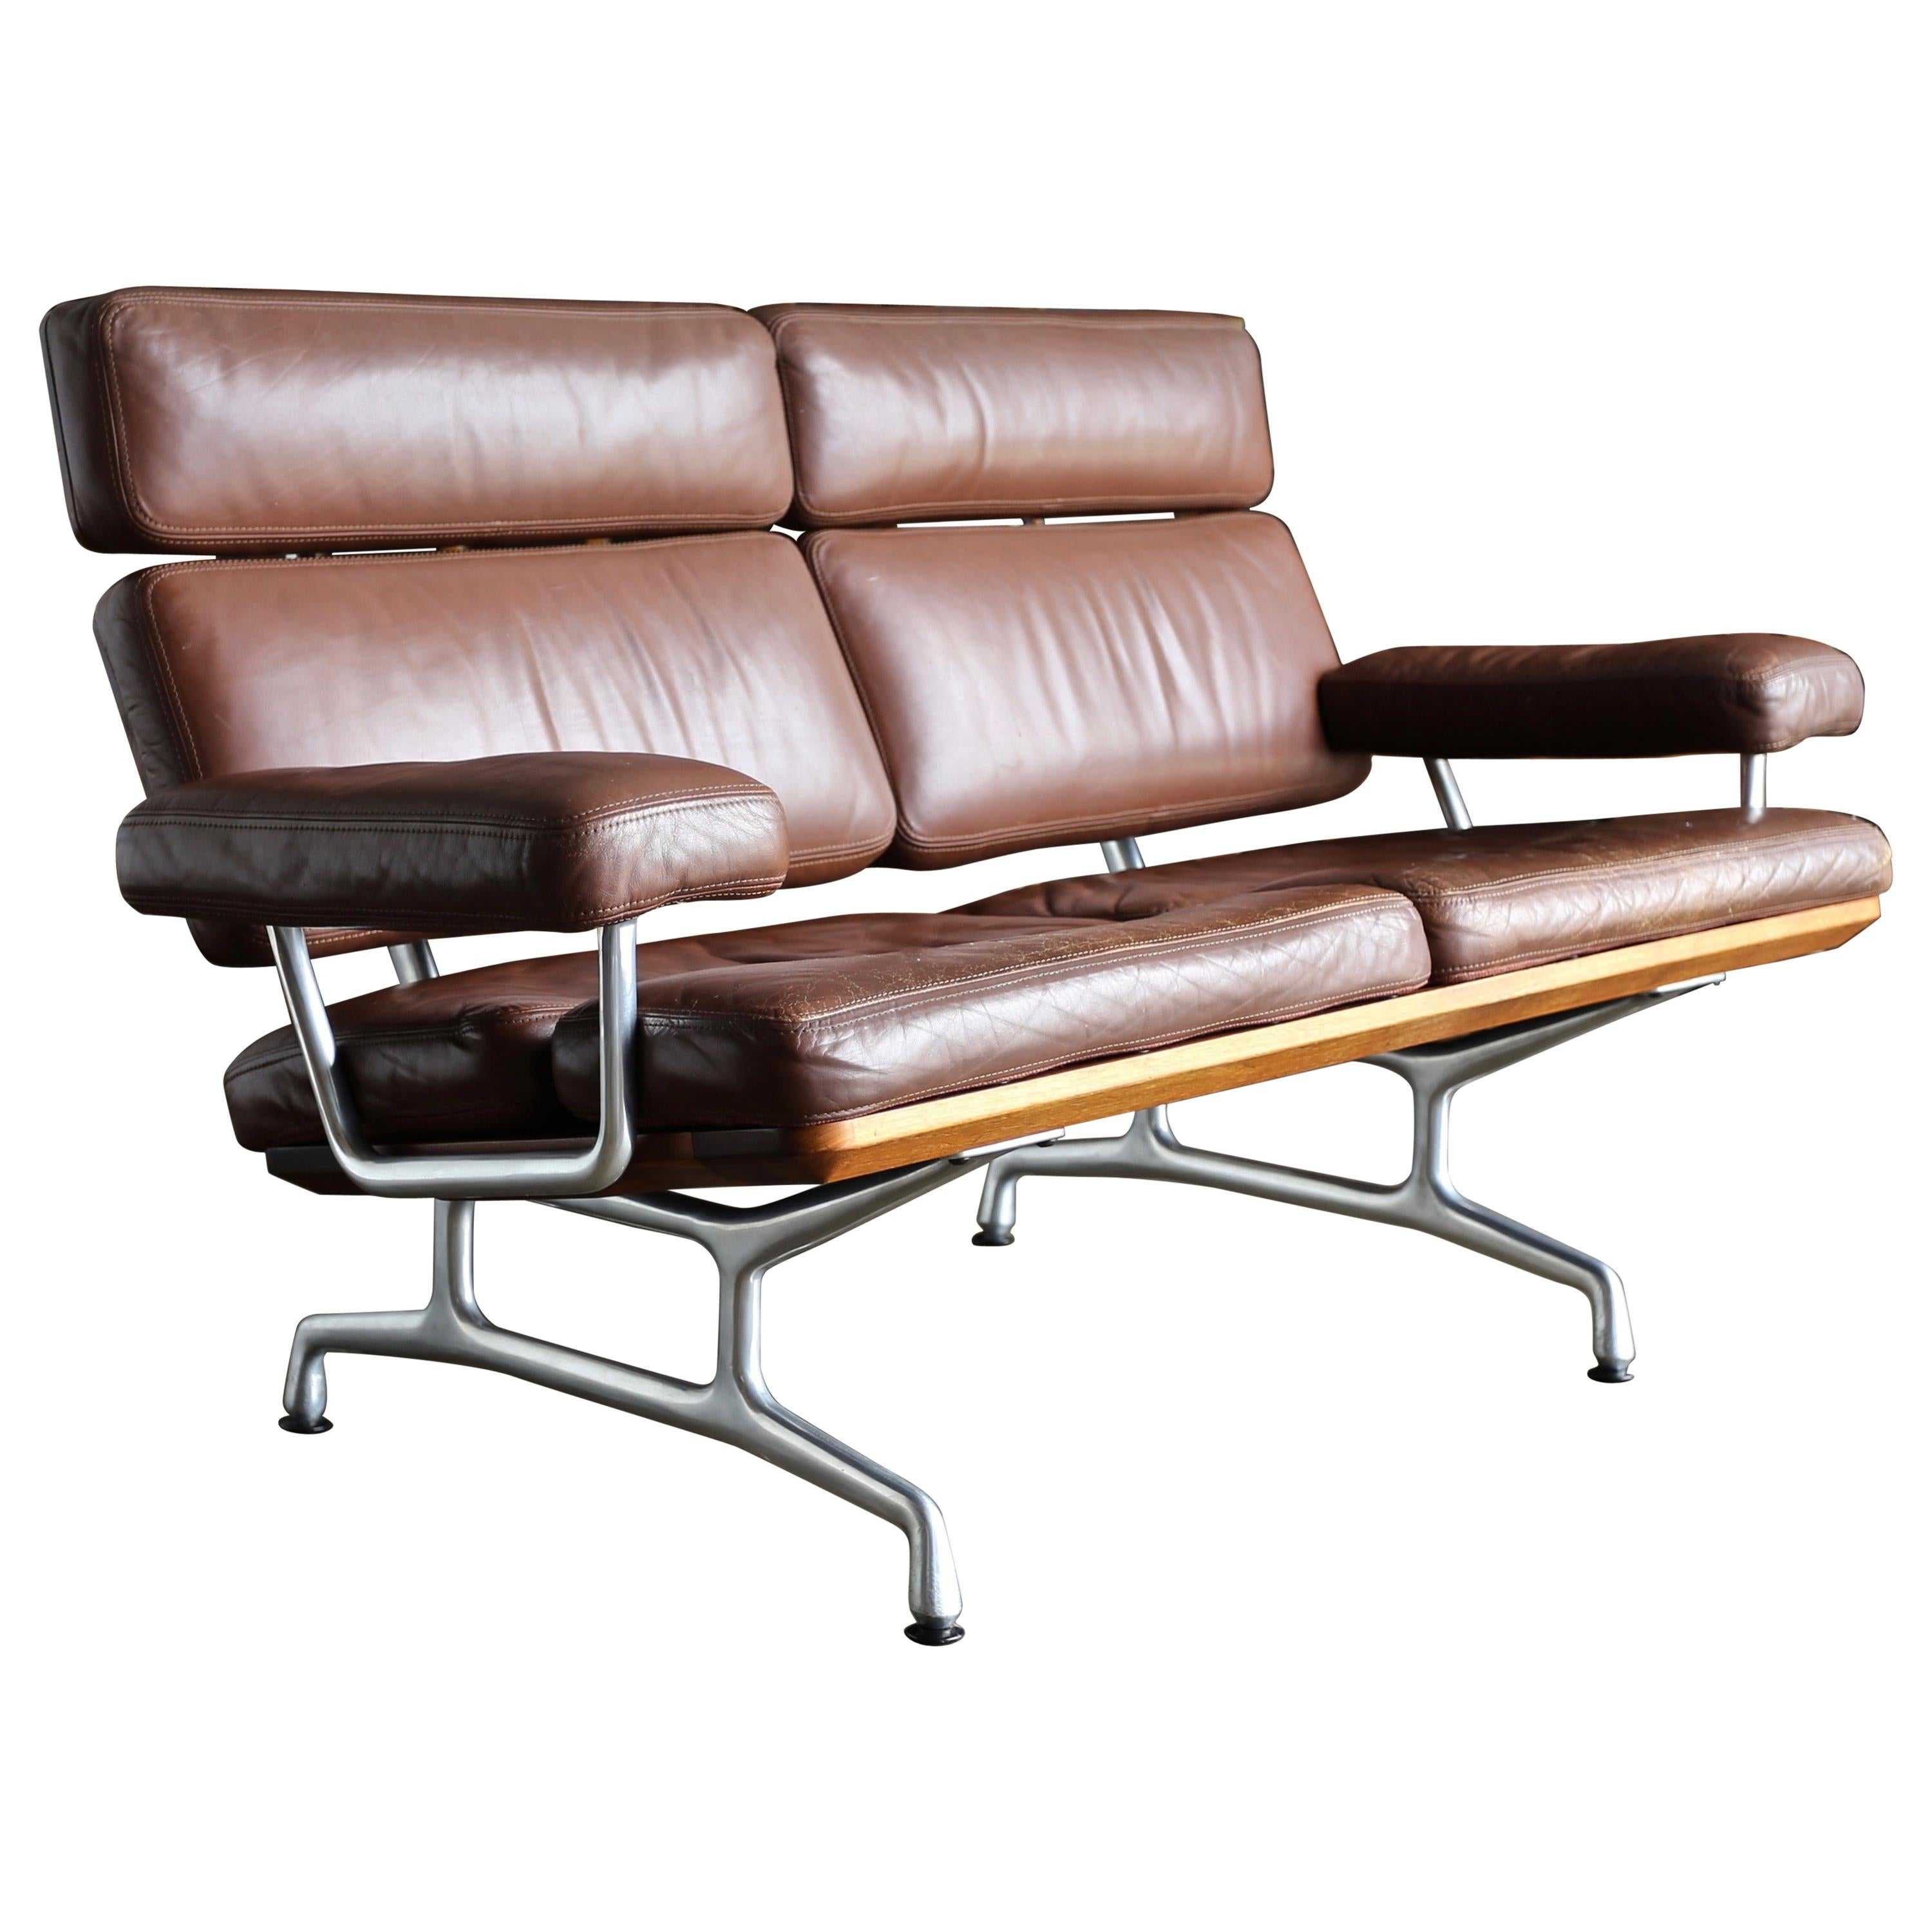 Wondrous Charles And Ray Eames For Herman Miller Chromed Steel And Mohair Compact Sofa Forskolin Free Trial Chair Design Images Forskolin Free Trialorg